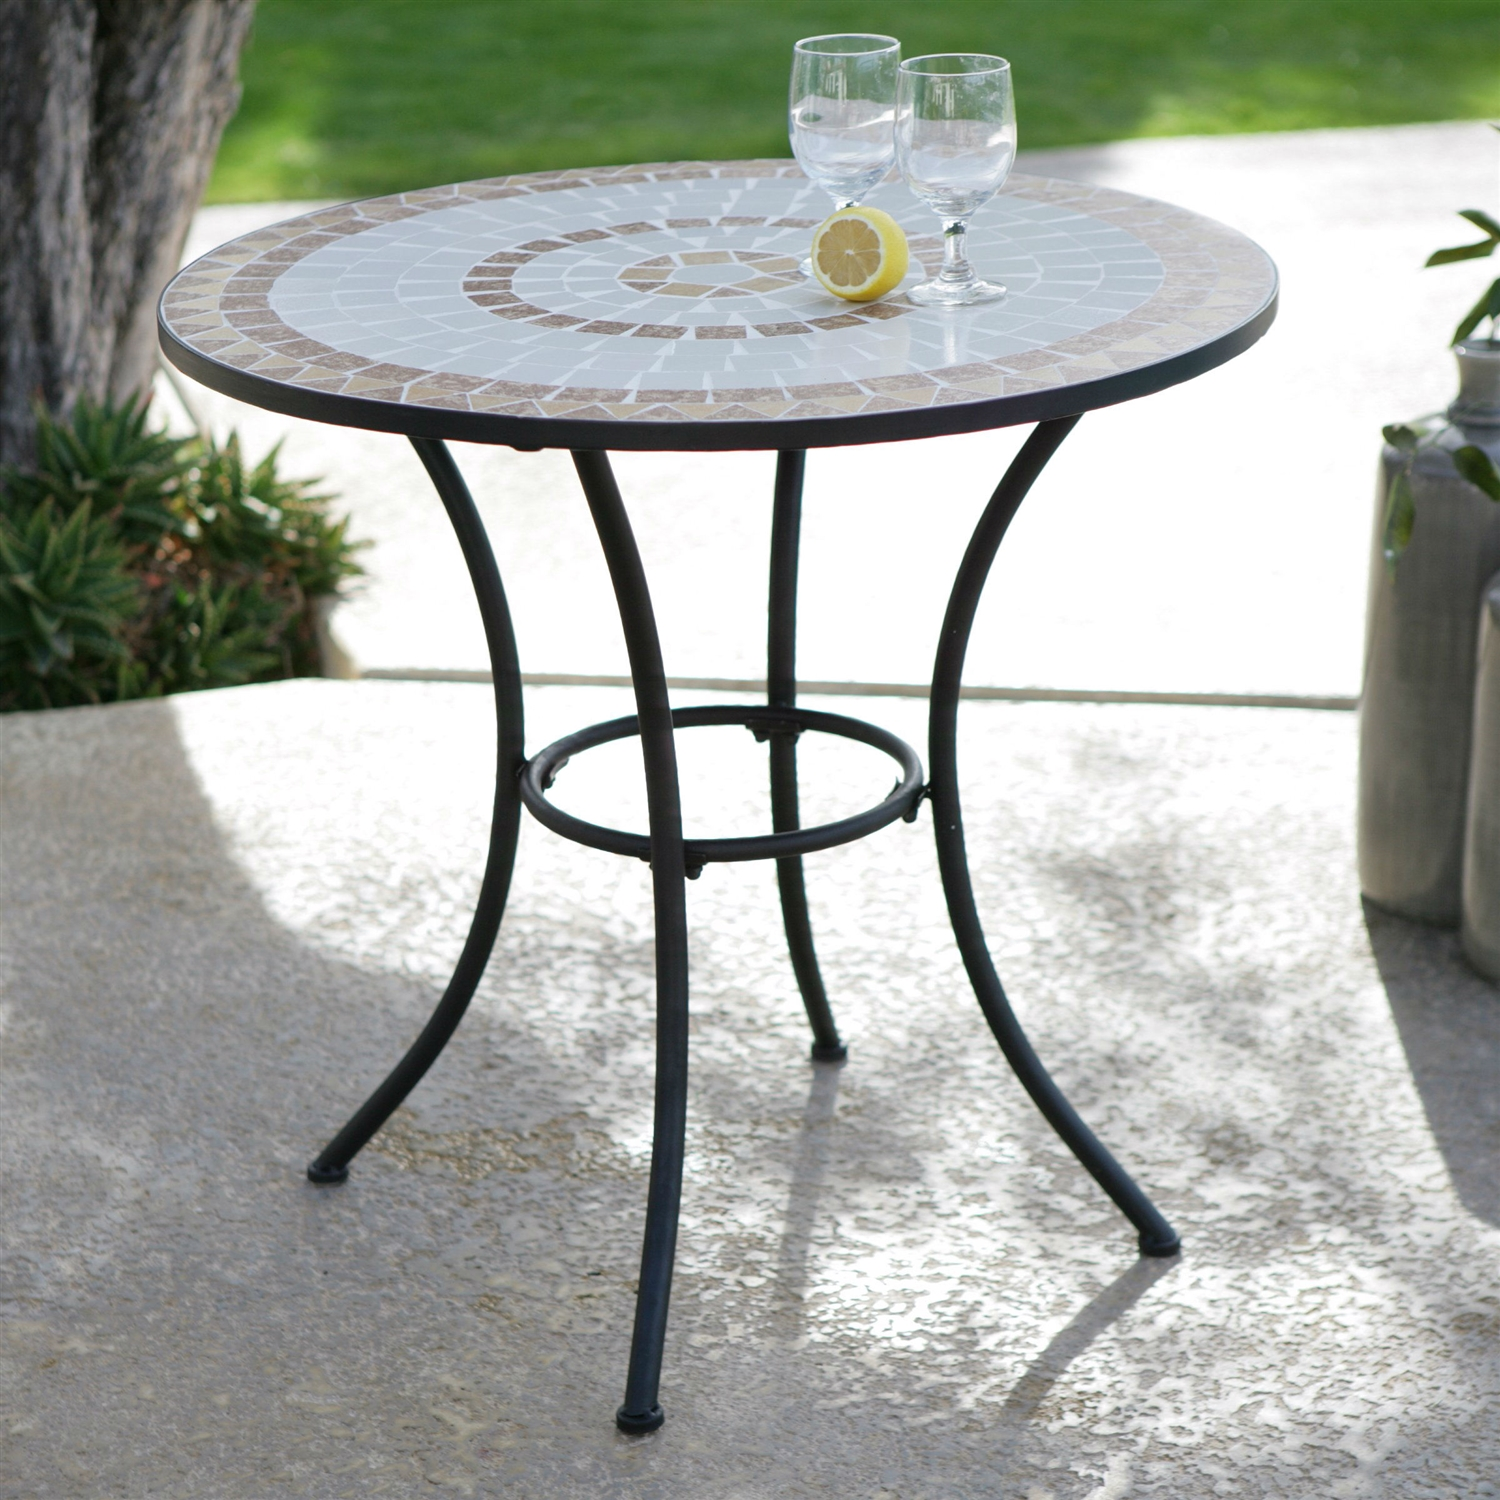 Wonderful Round Mosaic Bistro Table With Black Legs For Home Furniture Ideas